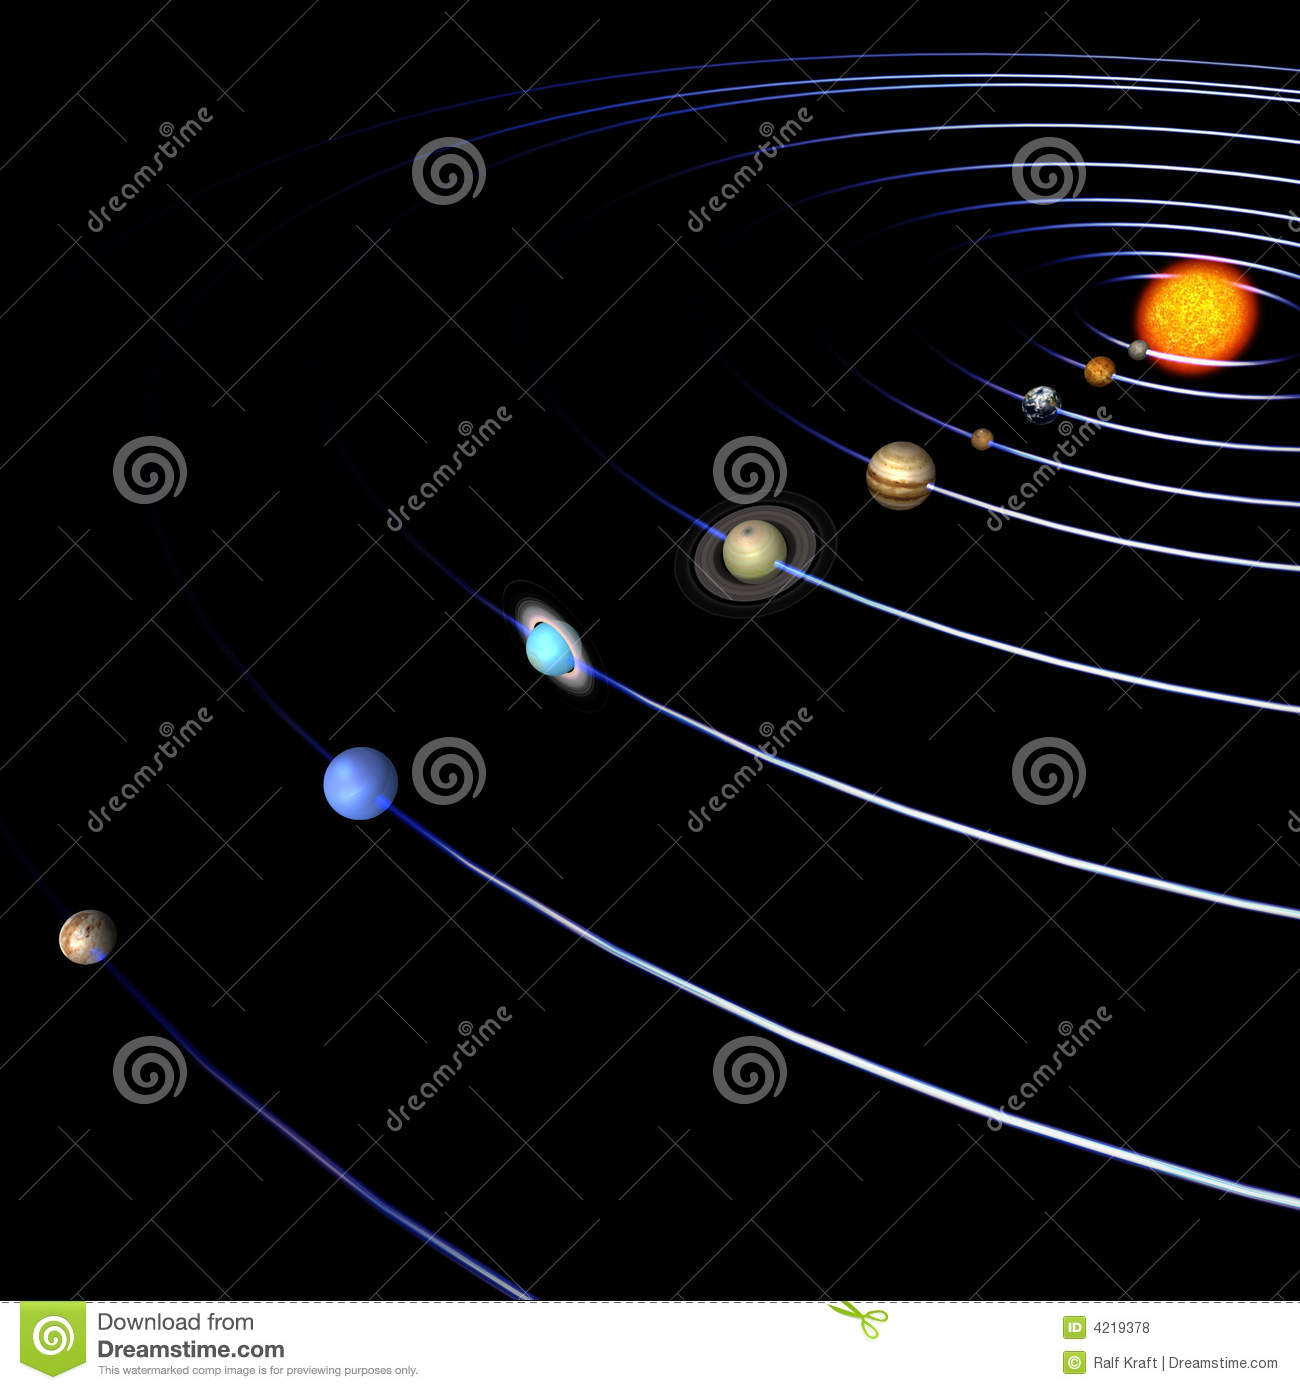 solar system paths - photo #23